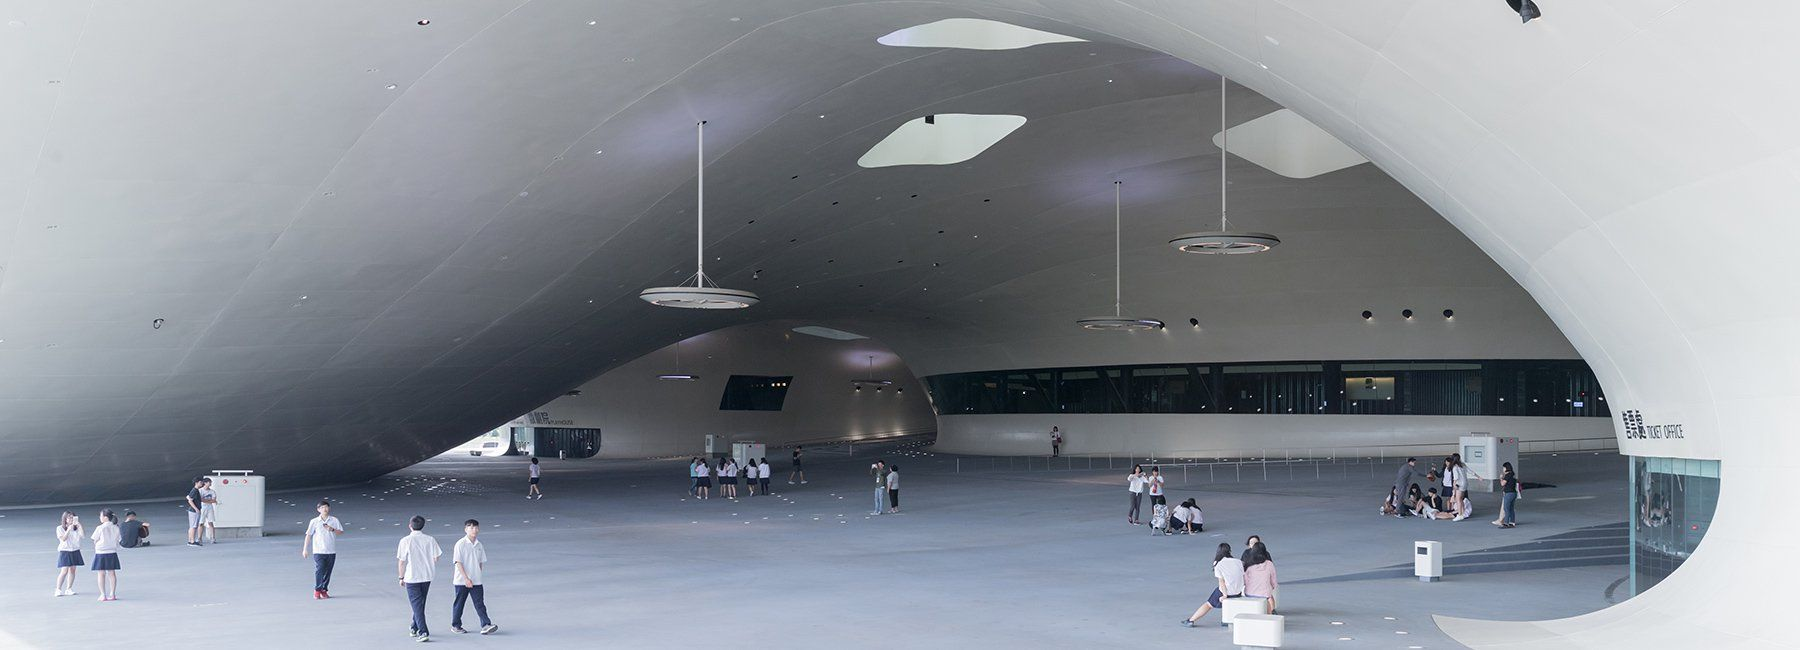 The World S Largest Performing Arts Center Opens In Taiwan Performing Arts Center Architecture Project Kaohsiung